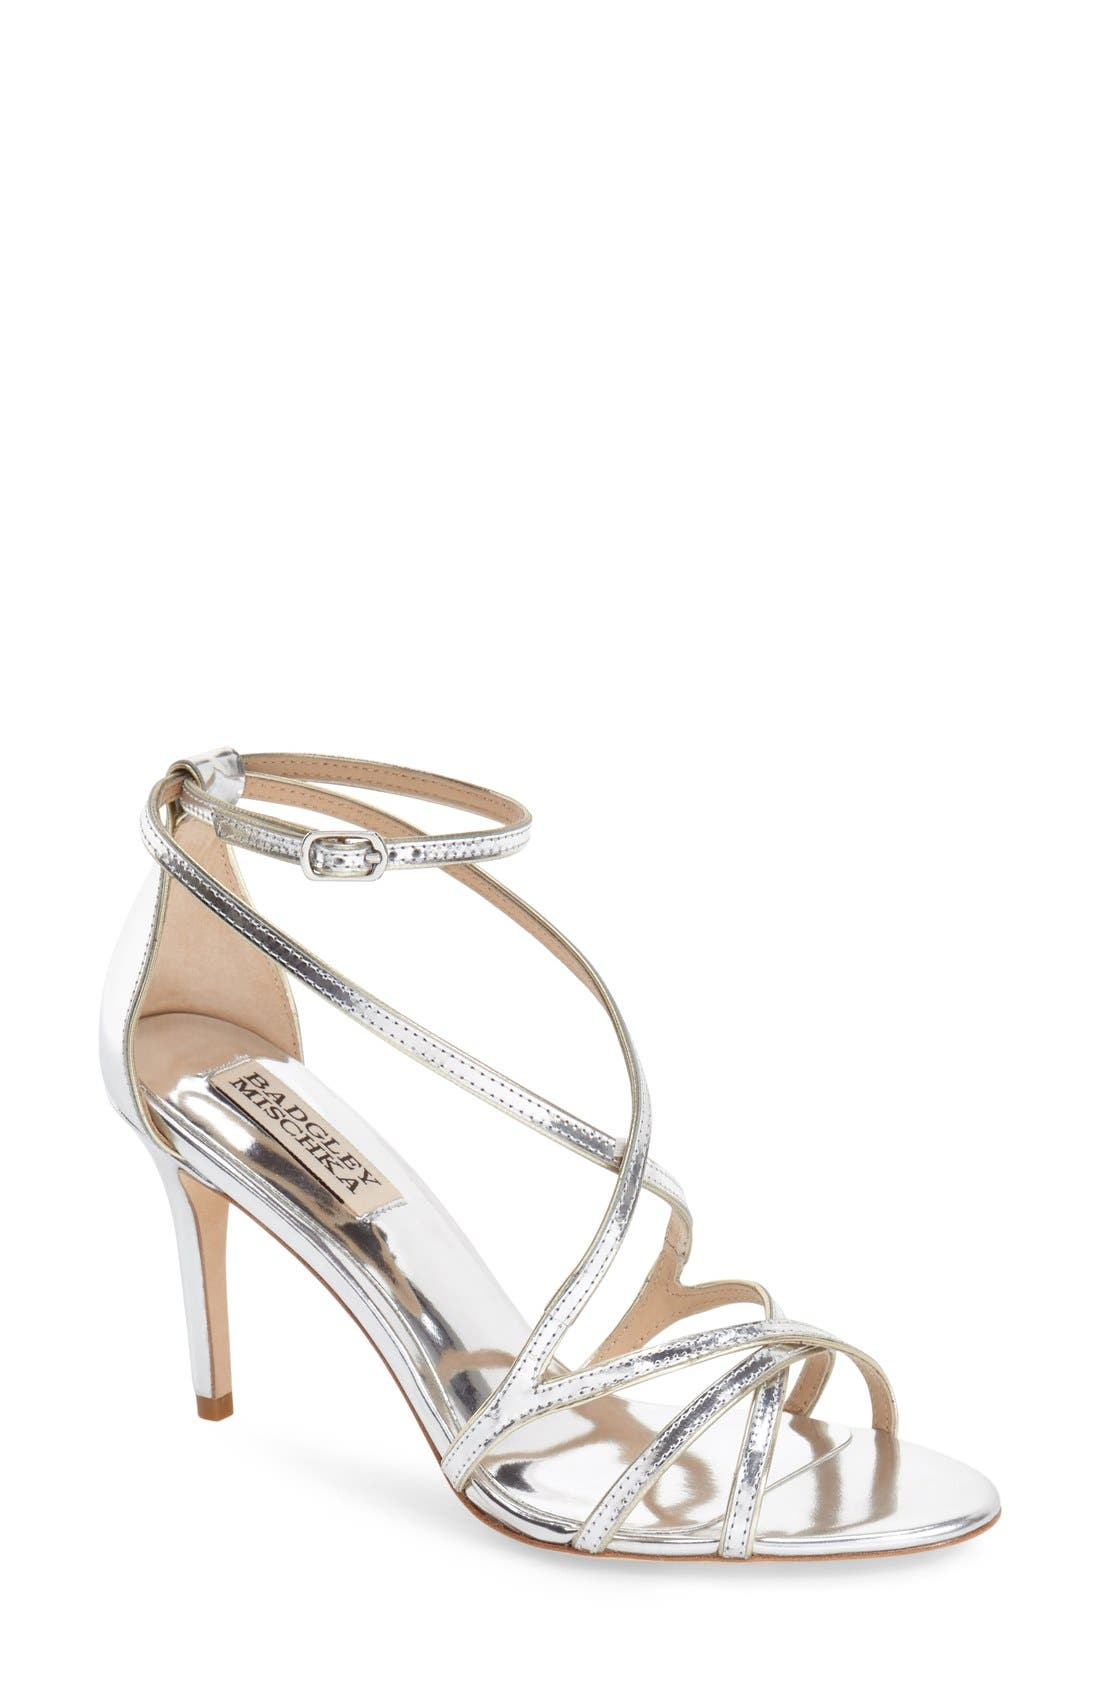 BADGLEY MISCHKA COLLECTION, Badgley Mischka 'Lillian' Metallic Evening Sandal, Main thumbnail 1, color, 046